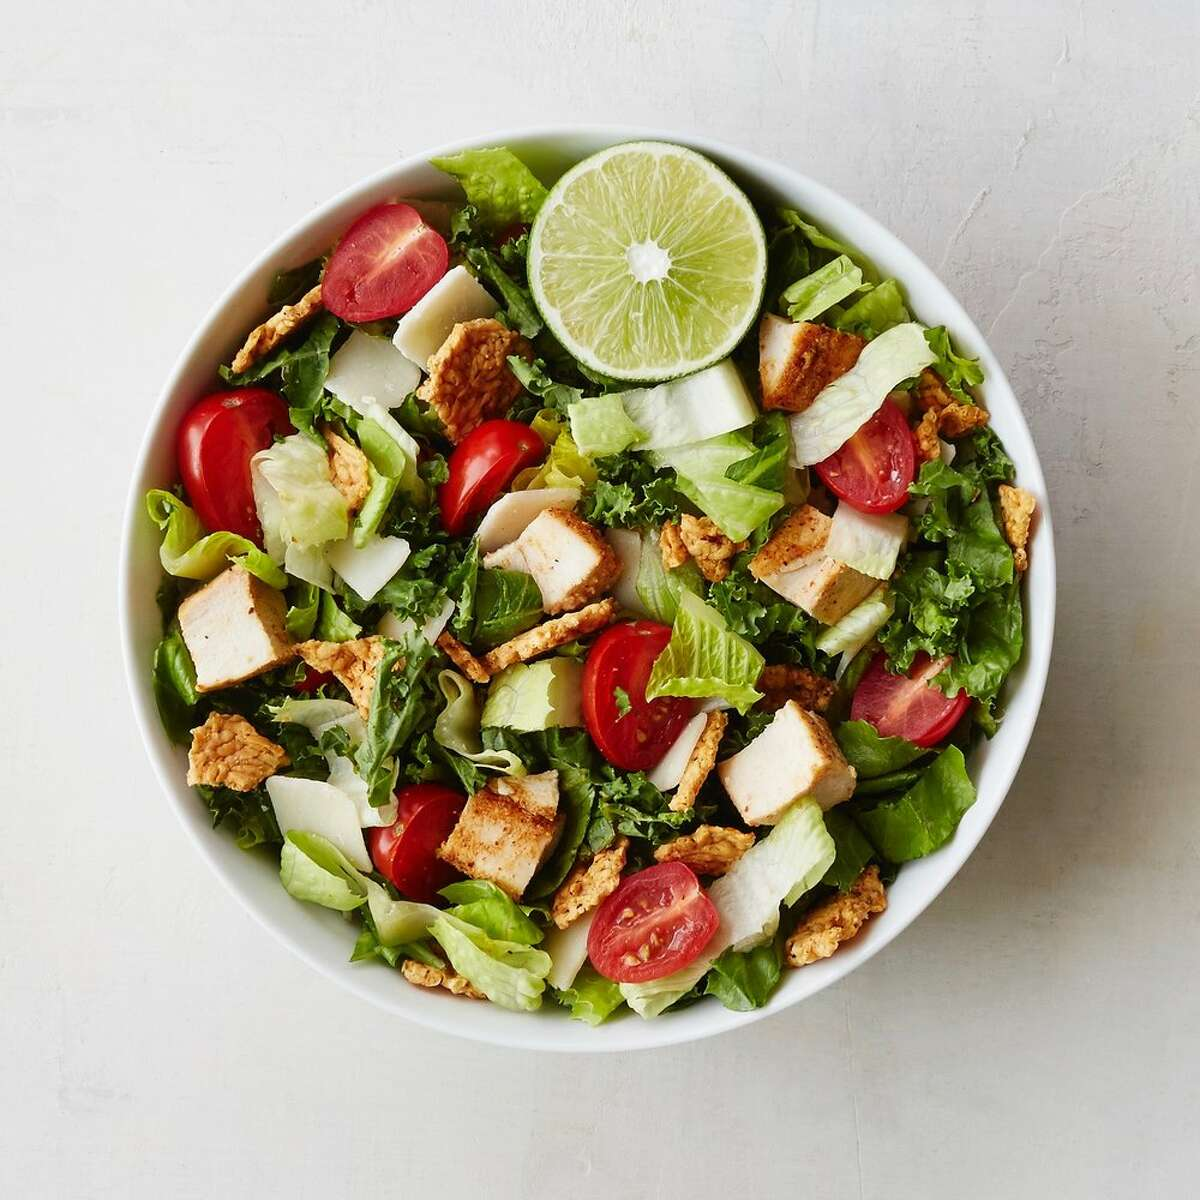 Sweetgreen, a national fast-casual salad bowl restaurant, chose Houston as its first expansion in Texas with new stores opening in Rice Village and Montrose.